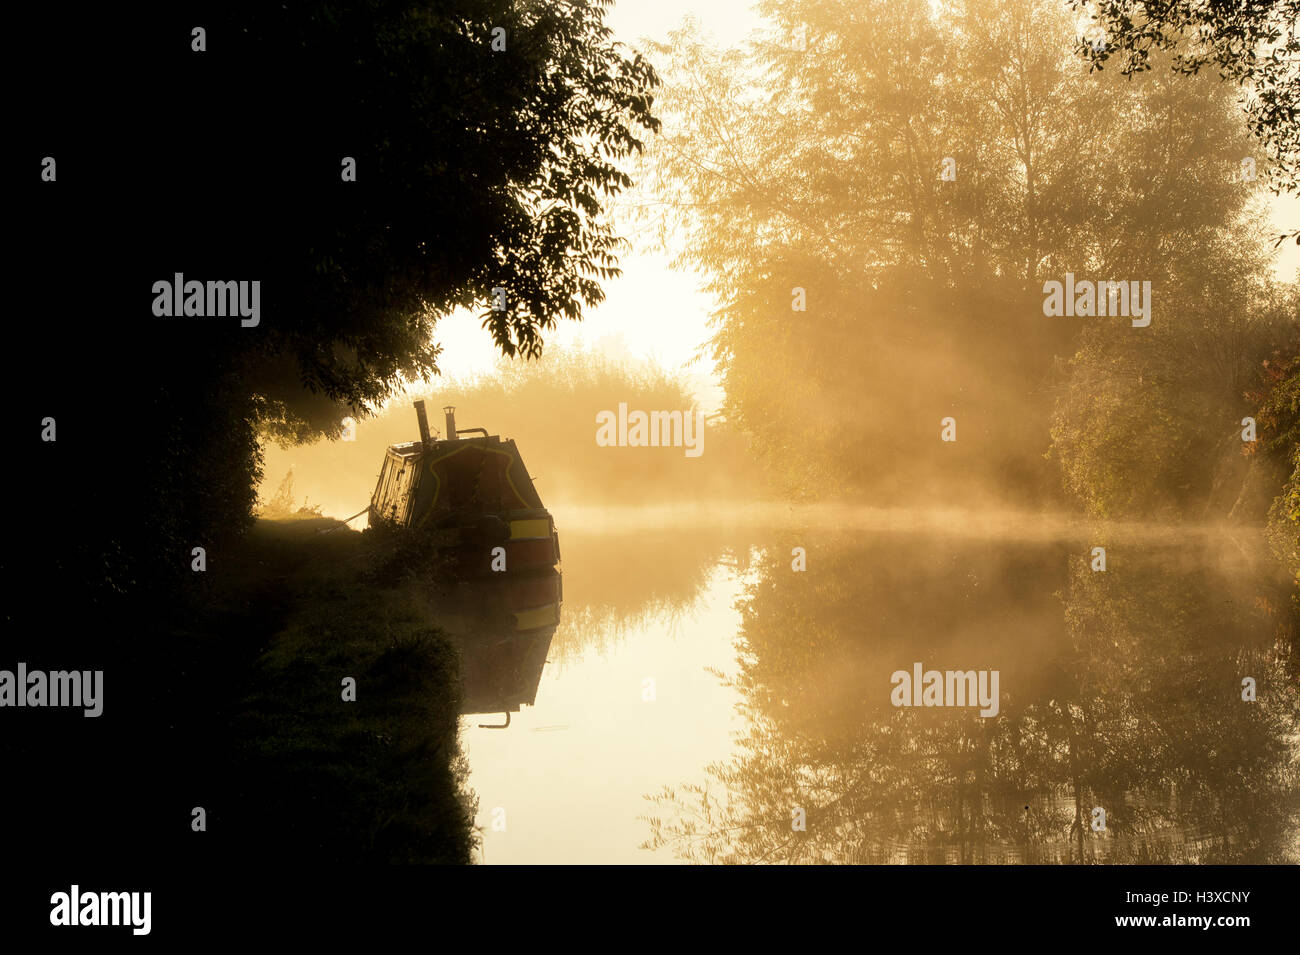 Narrowboat on a misty oxford canal in the early morning. Oxfordshire, England. Silhouette - Stock Image